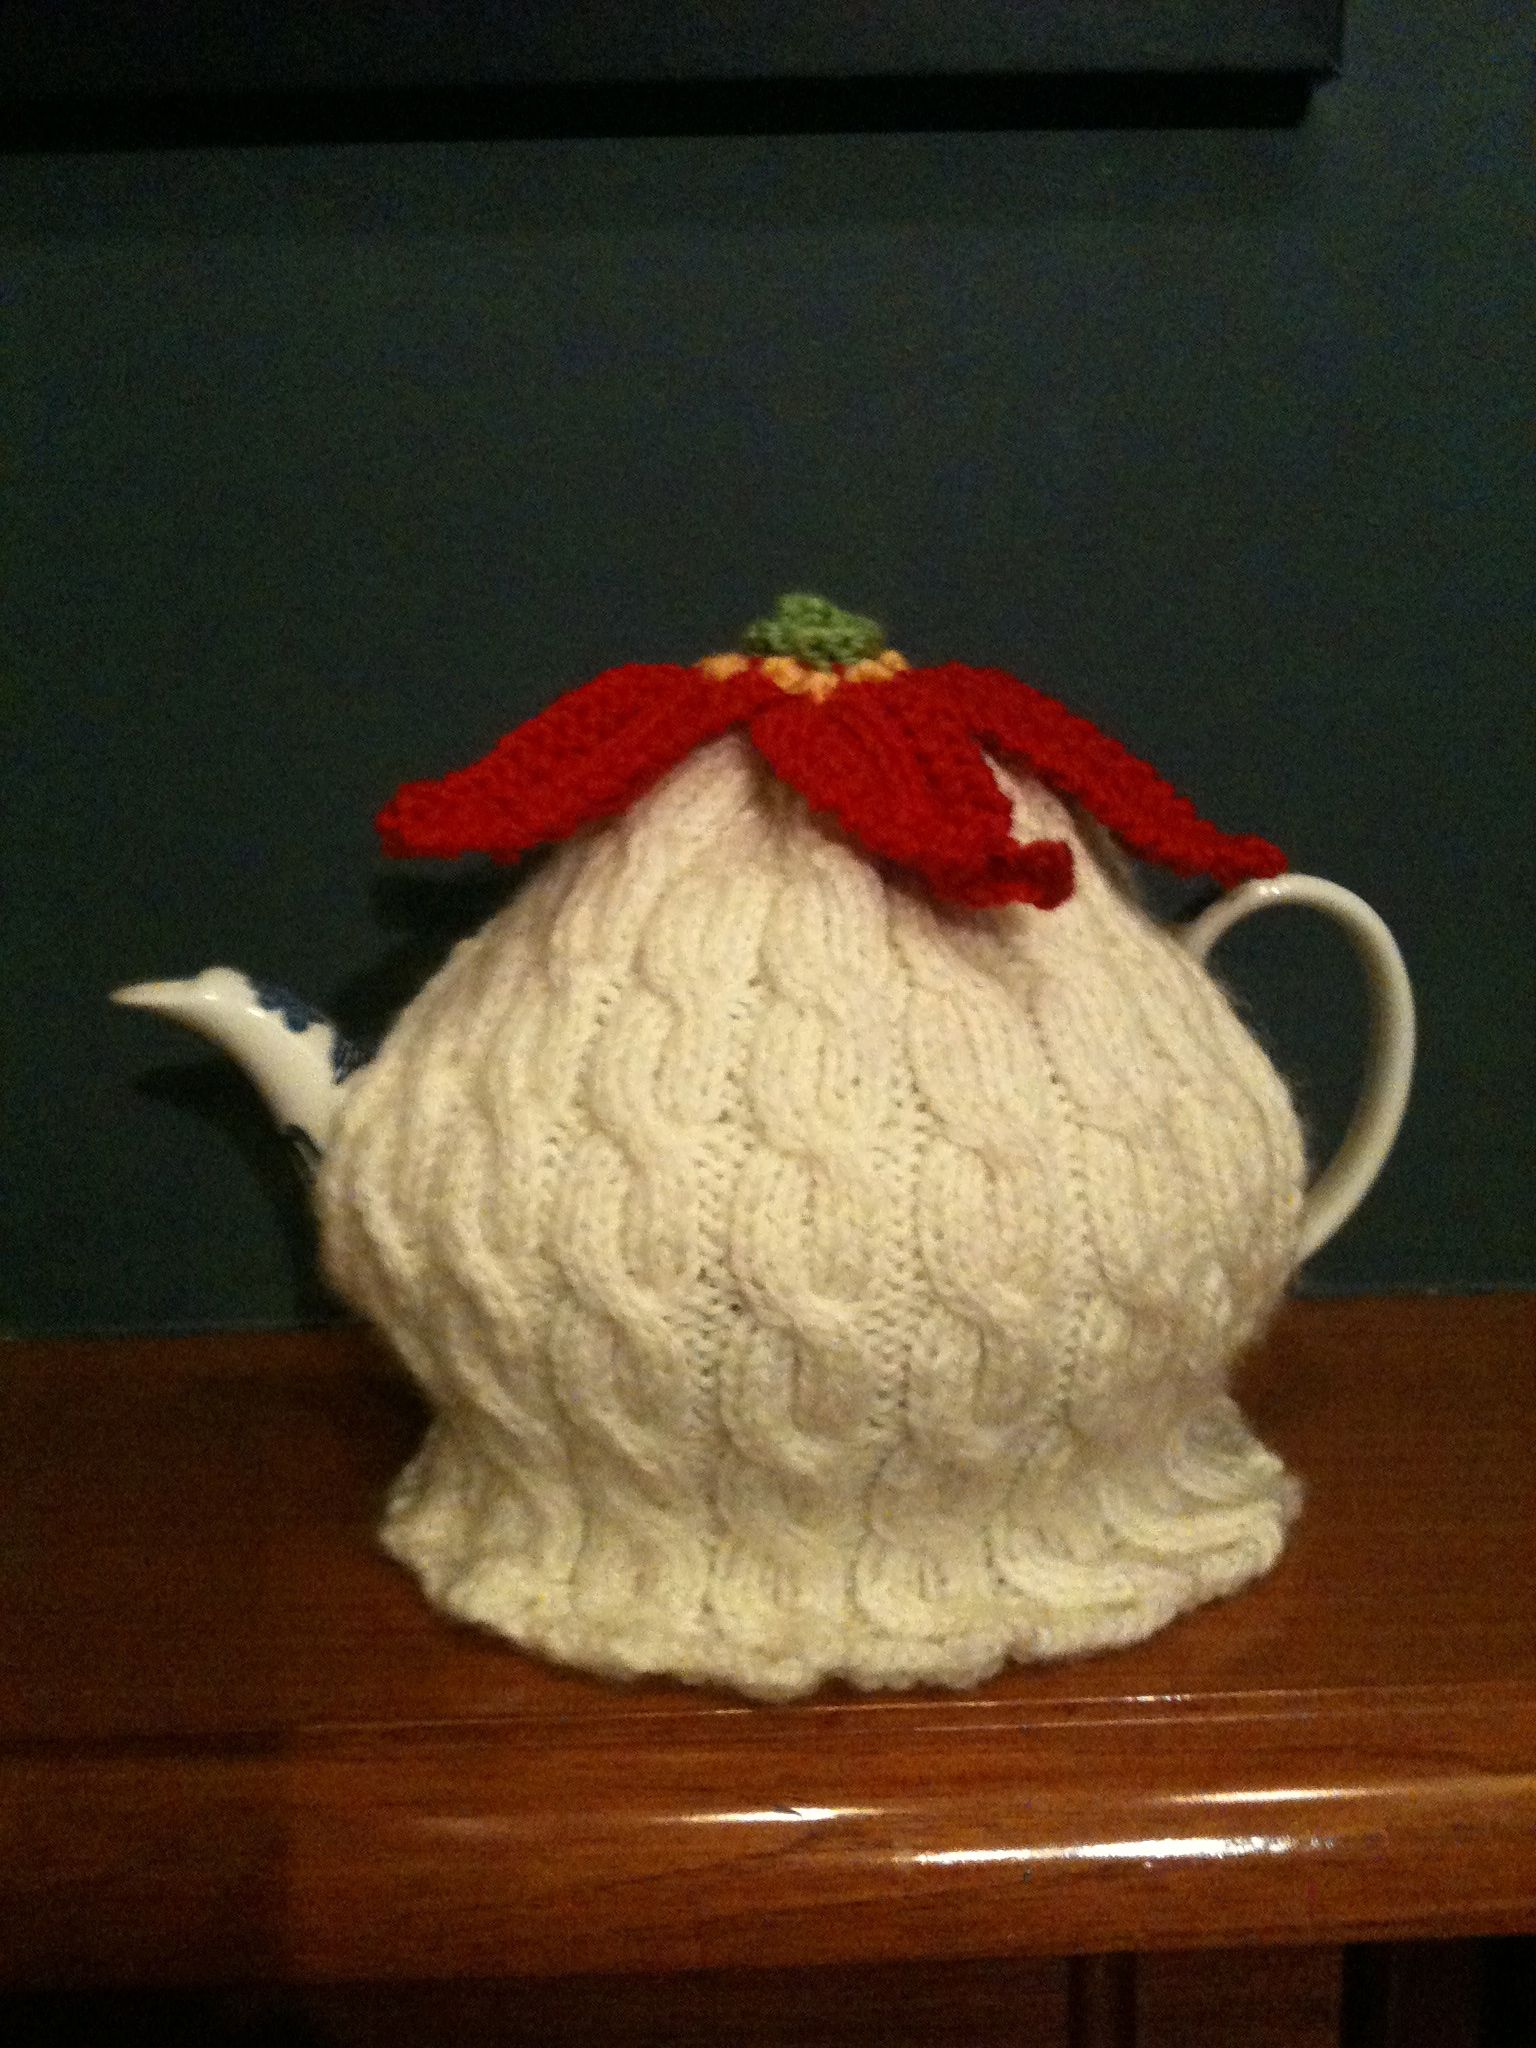 Poinsettia tea cosy by teresale the cosy is based on a free poinsettia tea cosy by teresale the cosy is based on a free internet pattern for a bankloansurffo Images